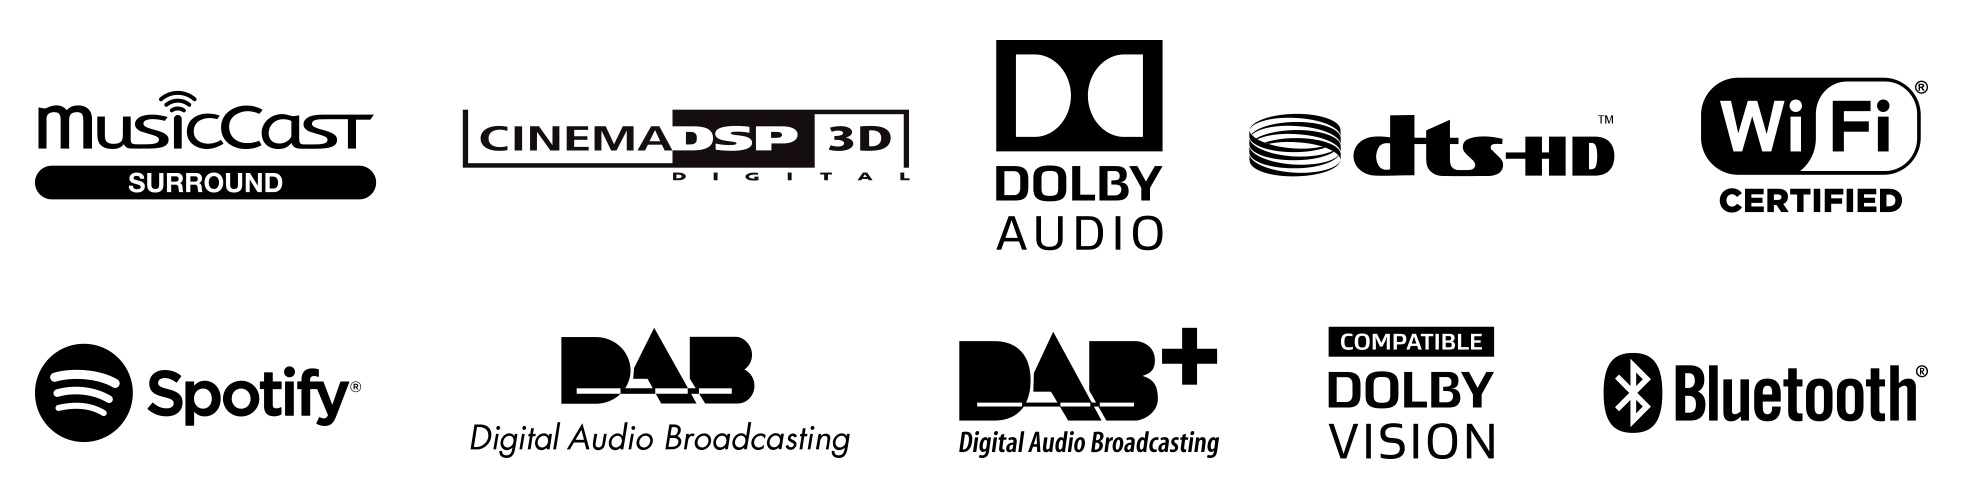 Supports MusicCast Surround, Cinema DSP 3D, Dolby Audio, DTS HD, WiFi Certified, Working with Apply Airplay, Bluetooth, Spotify, Compatible with Dolby Vision, Zone 2 Support